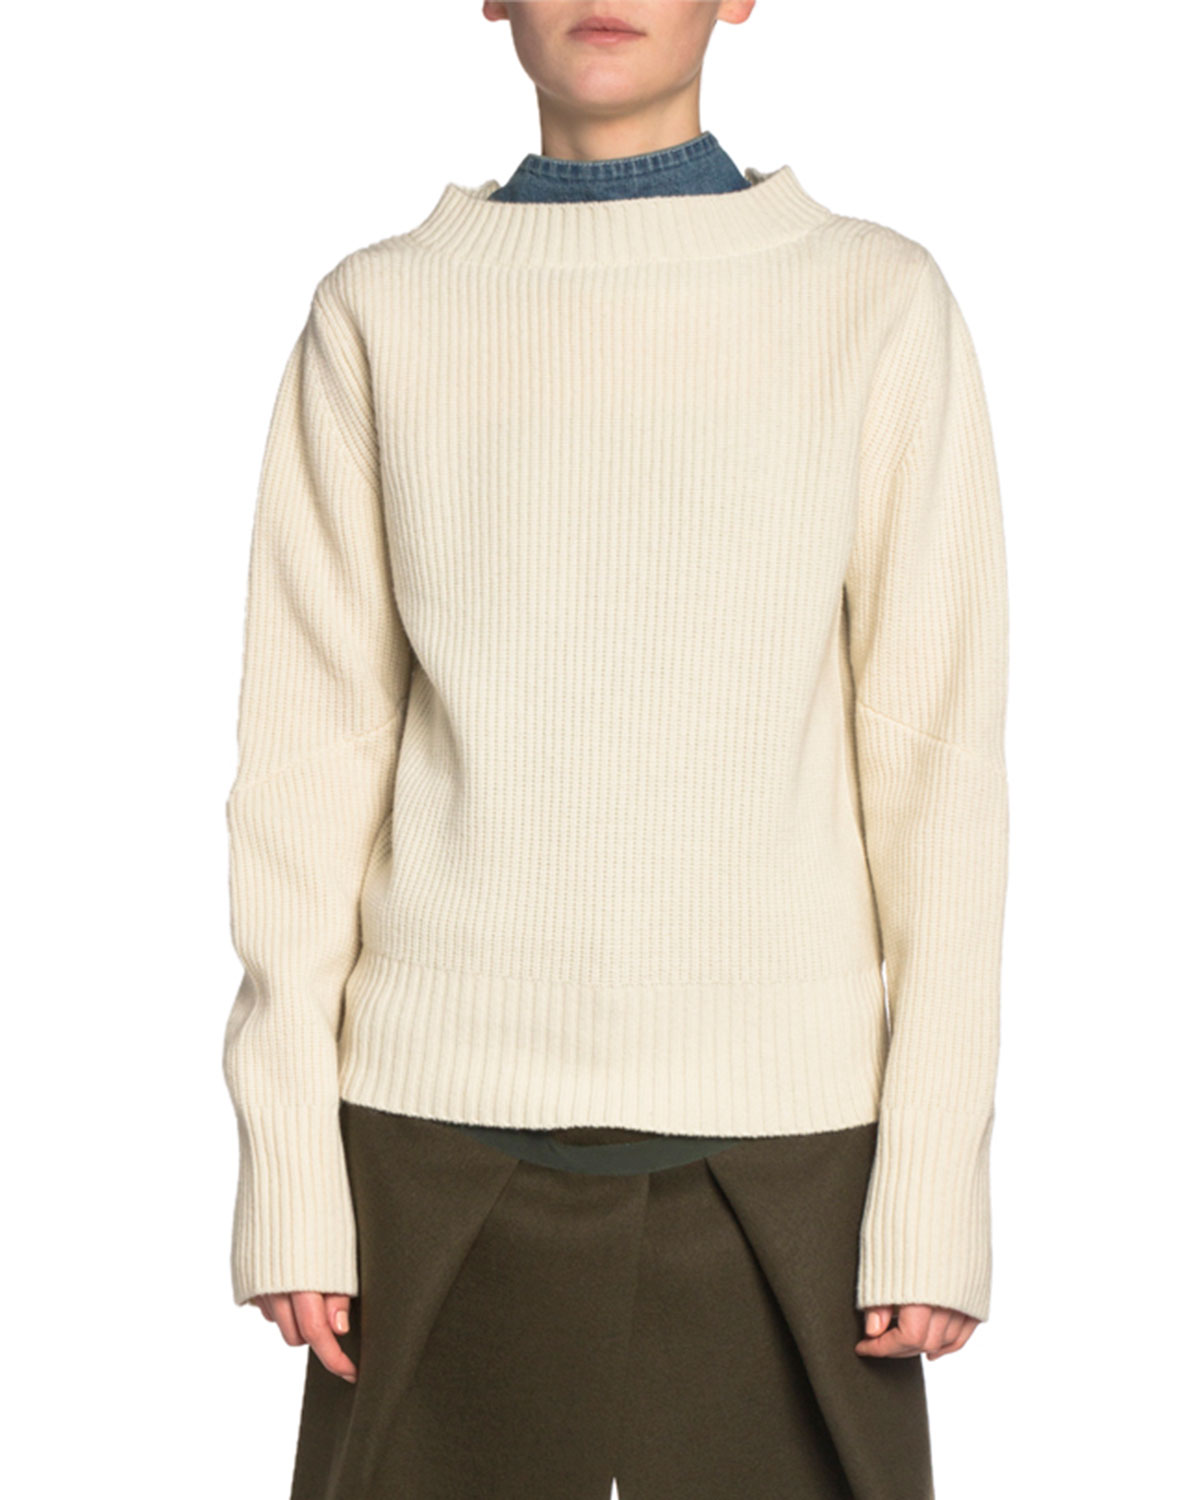 Sacai Knits DENIM-BACK RIBBED-KNIT MOCK-NECK SWEATER